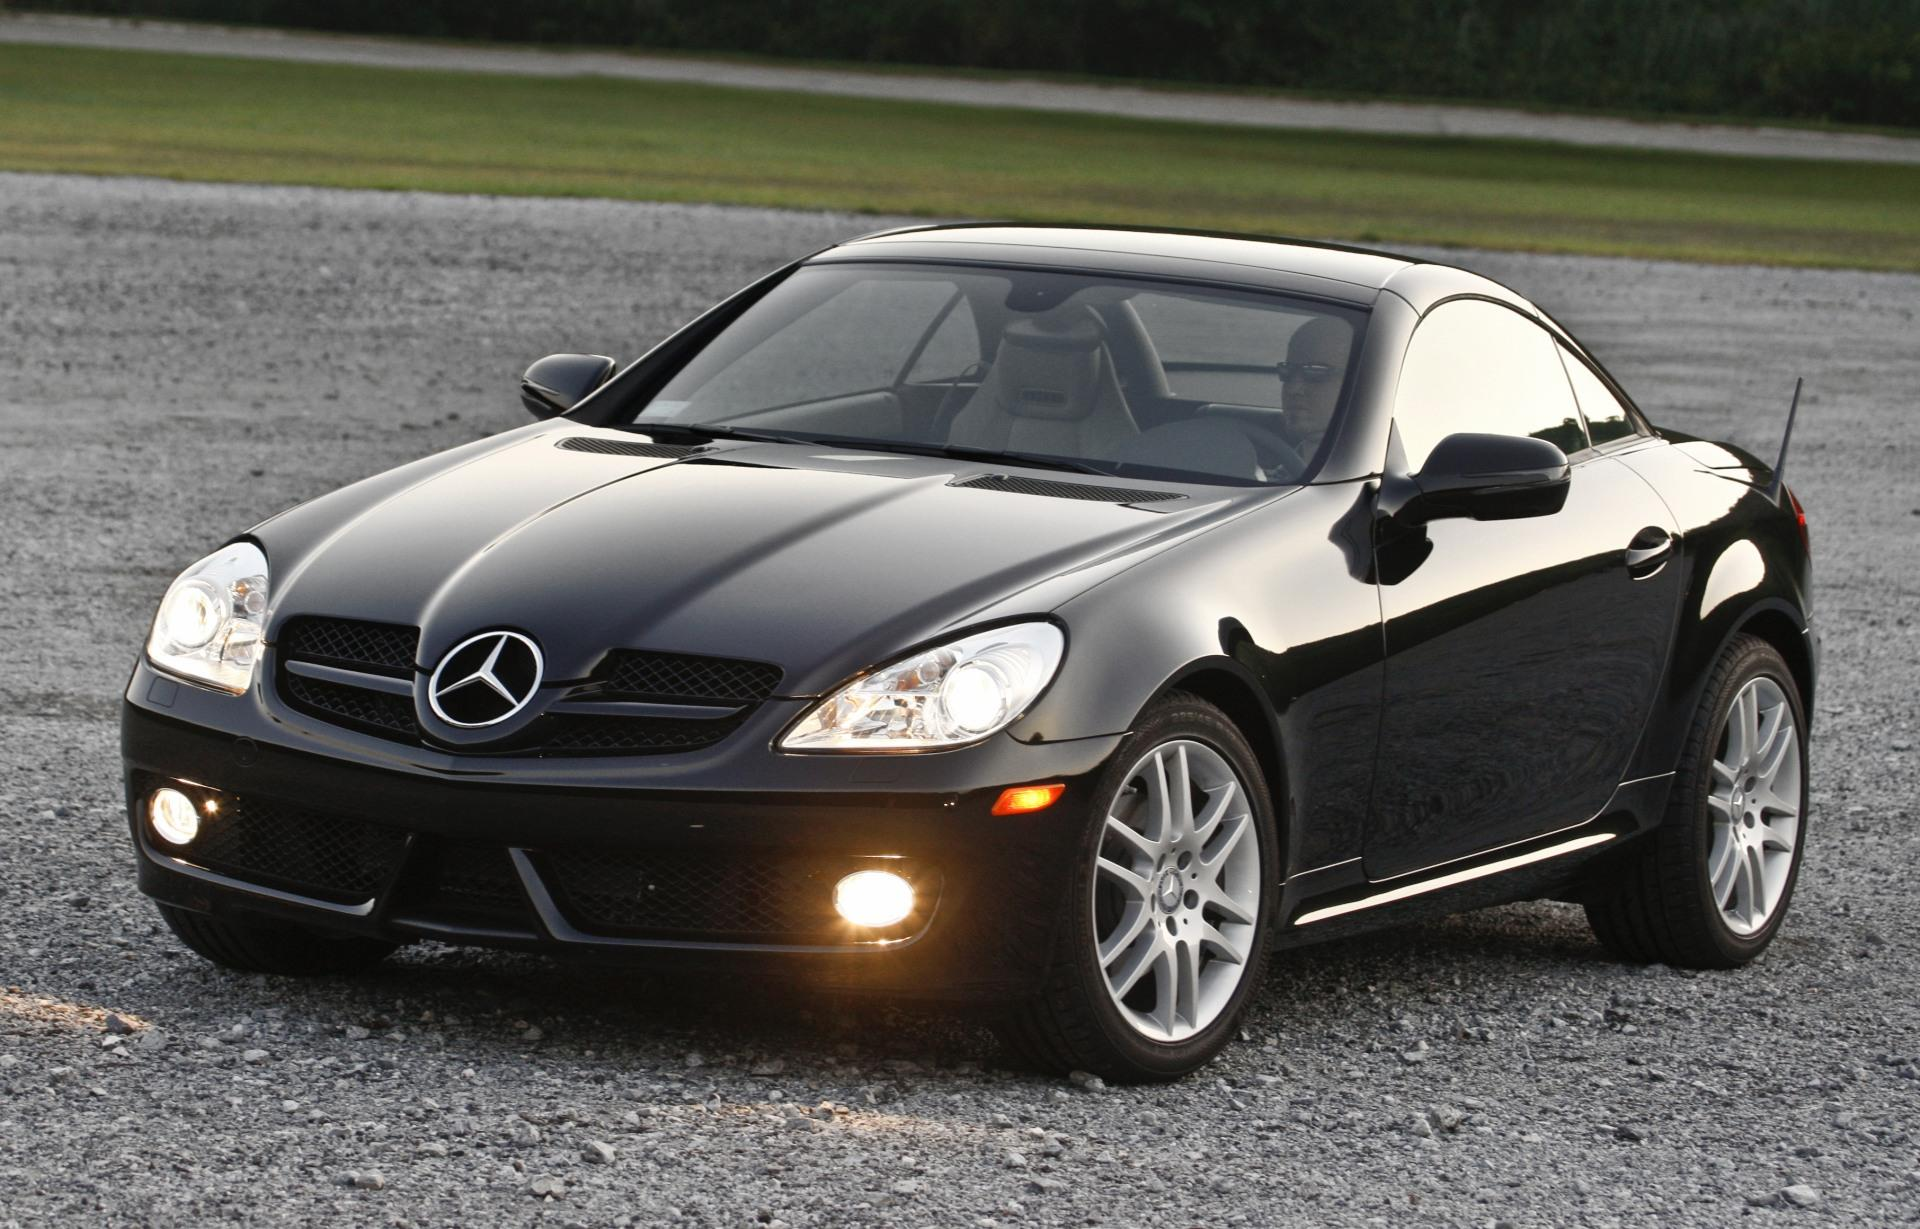 2011 mercedes benz slk class. Black Bedroom Furniture Sets. Home Design Ideas